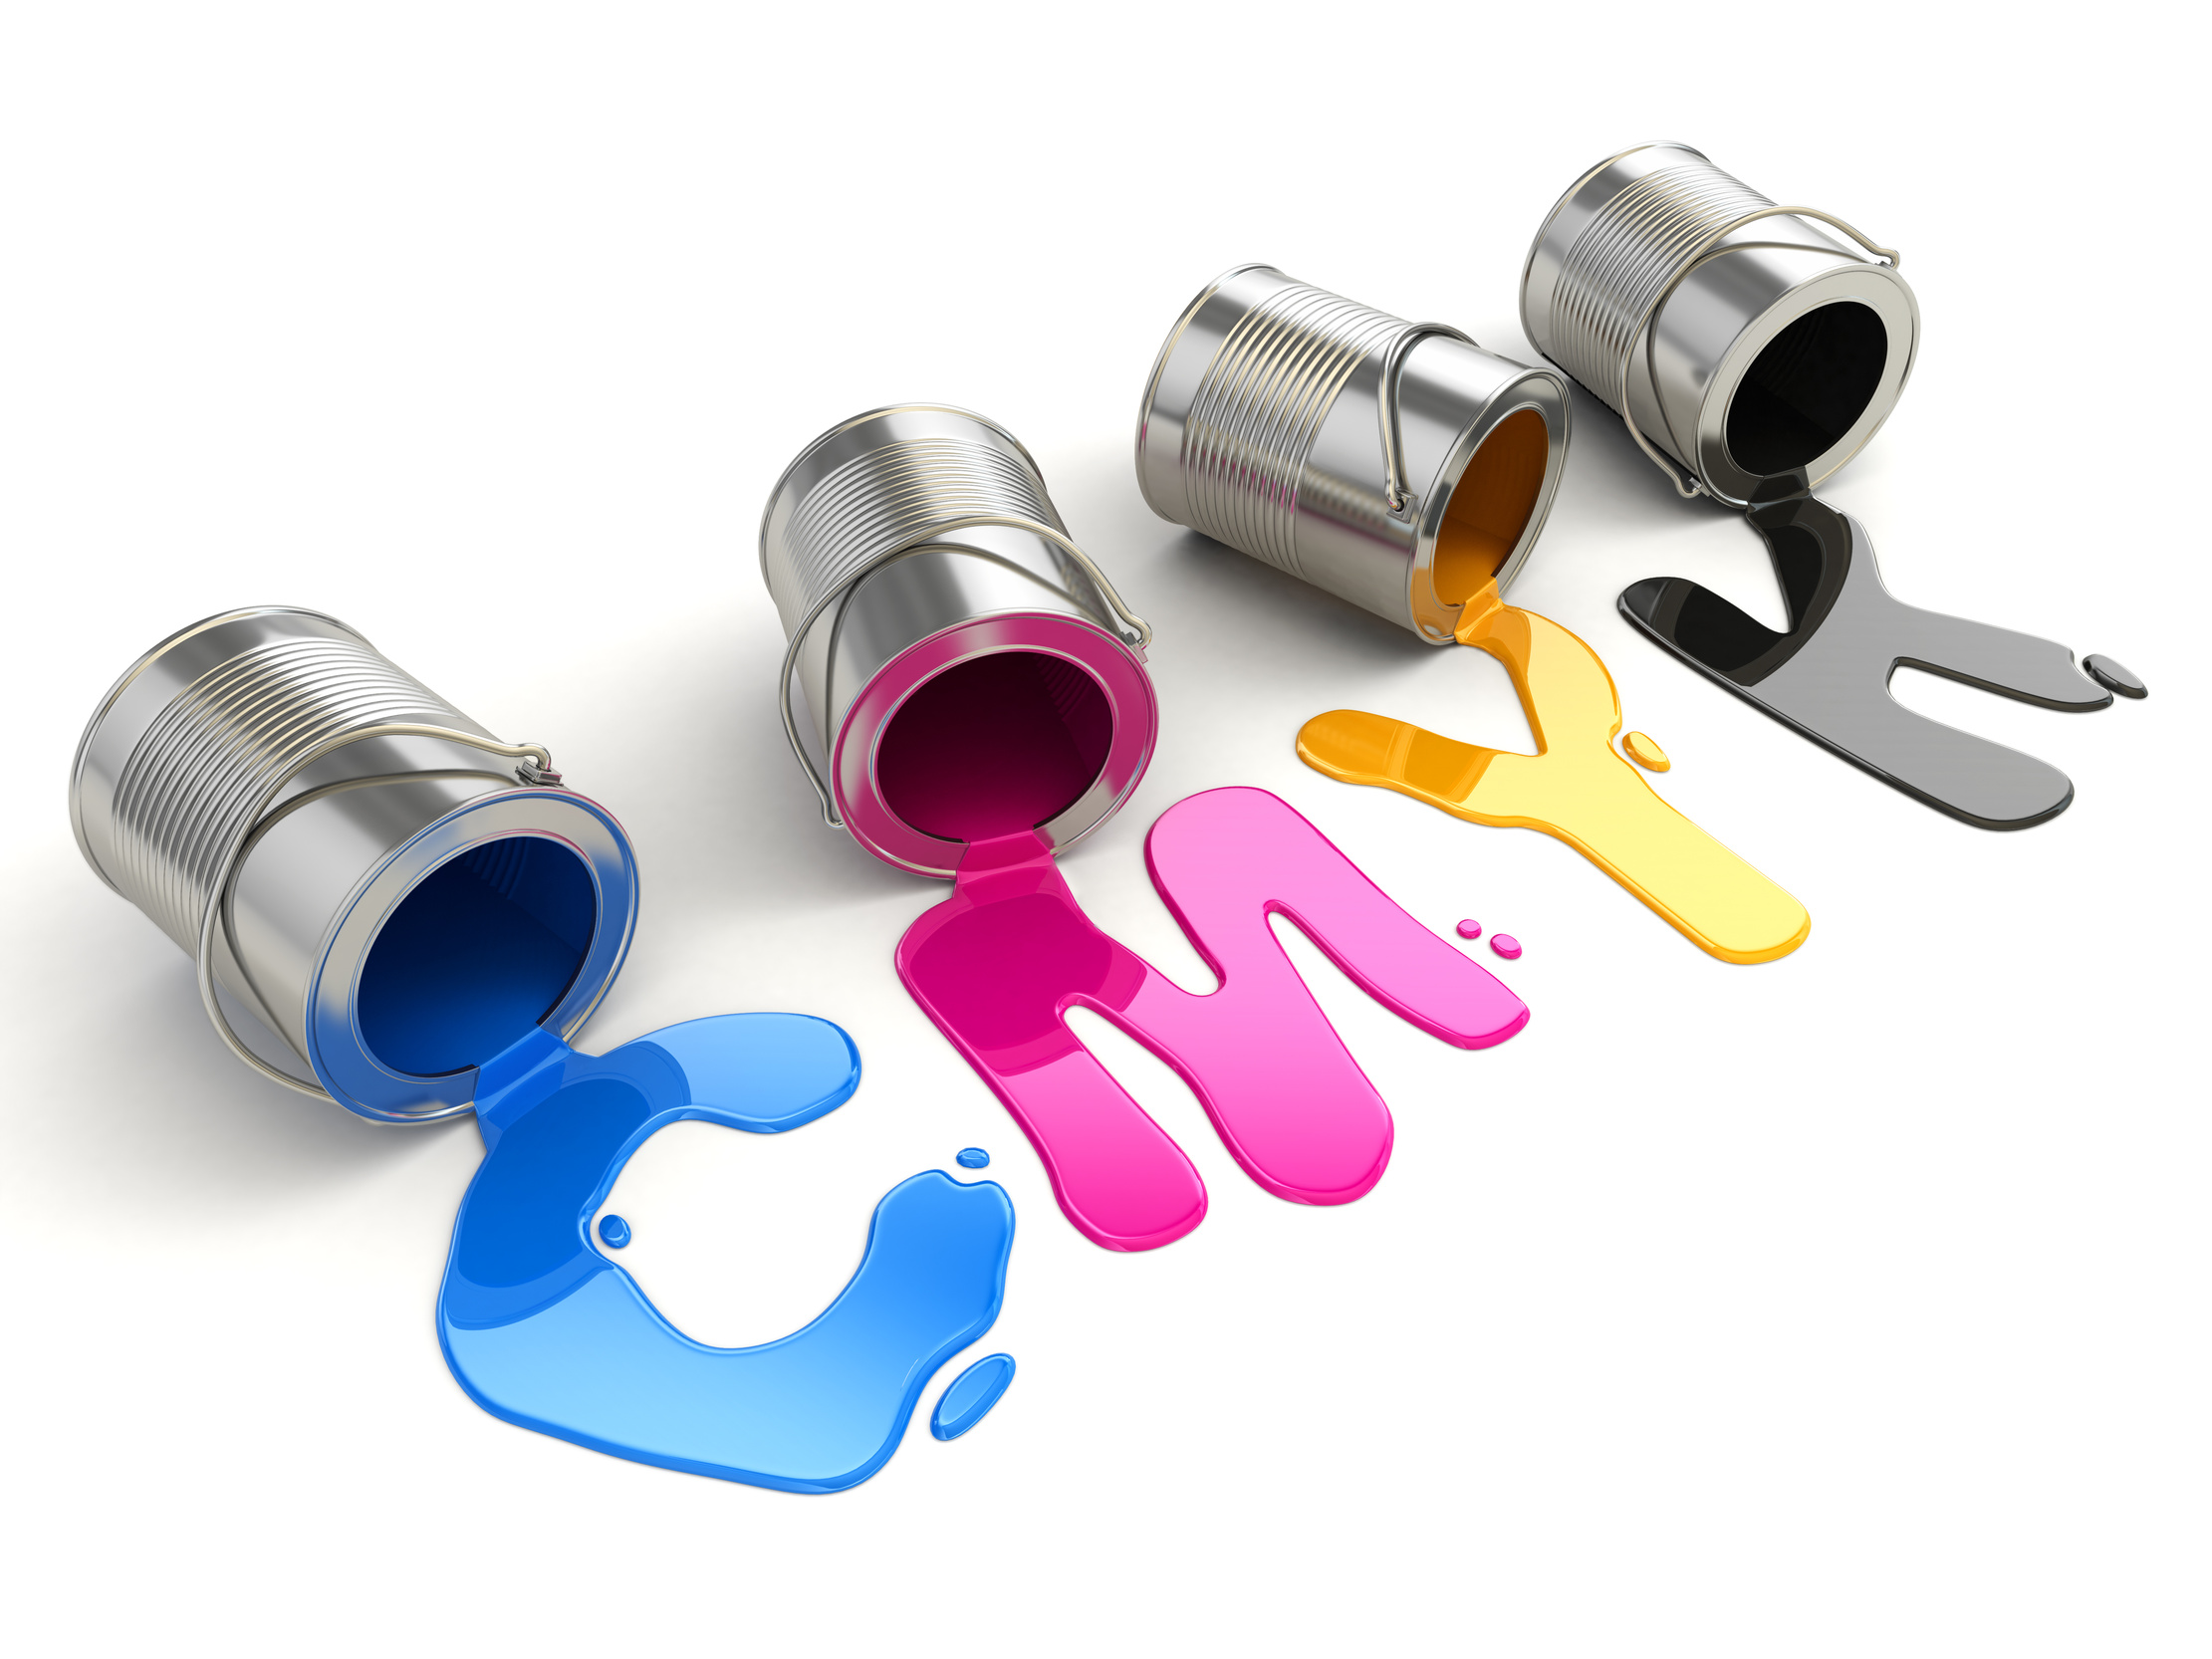 Spilled CMYK paint on white isolated background. 3d